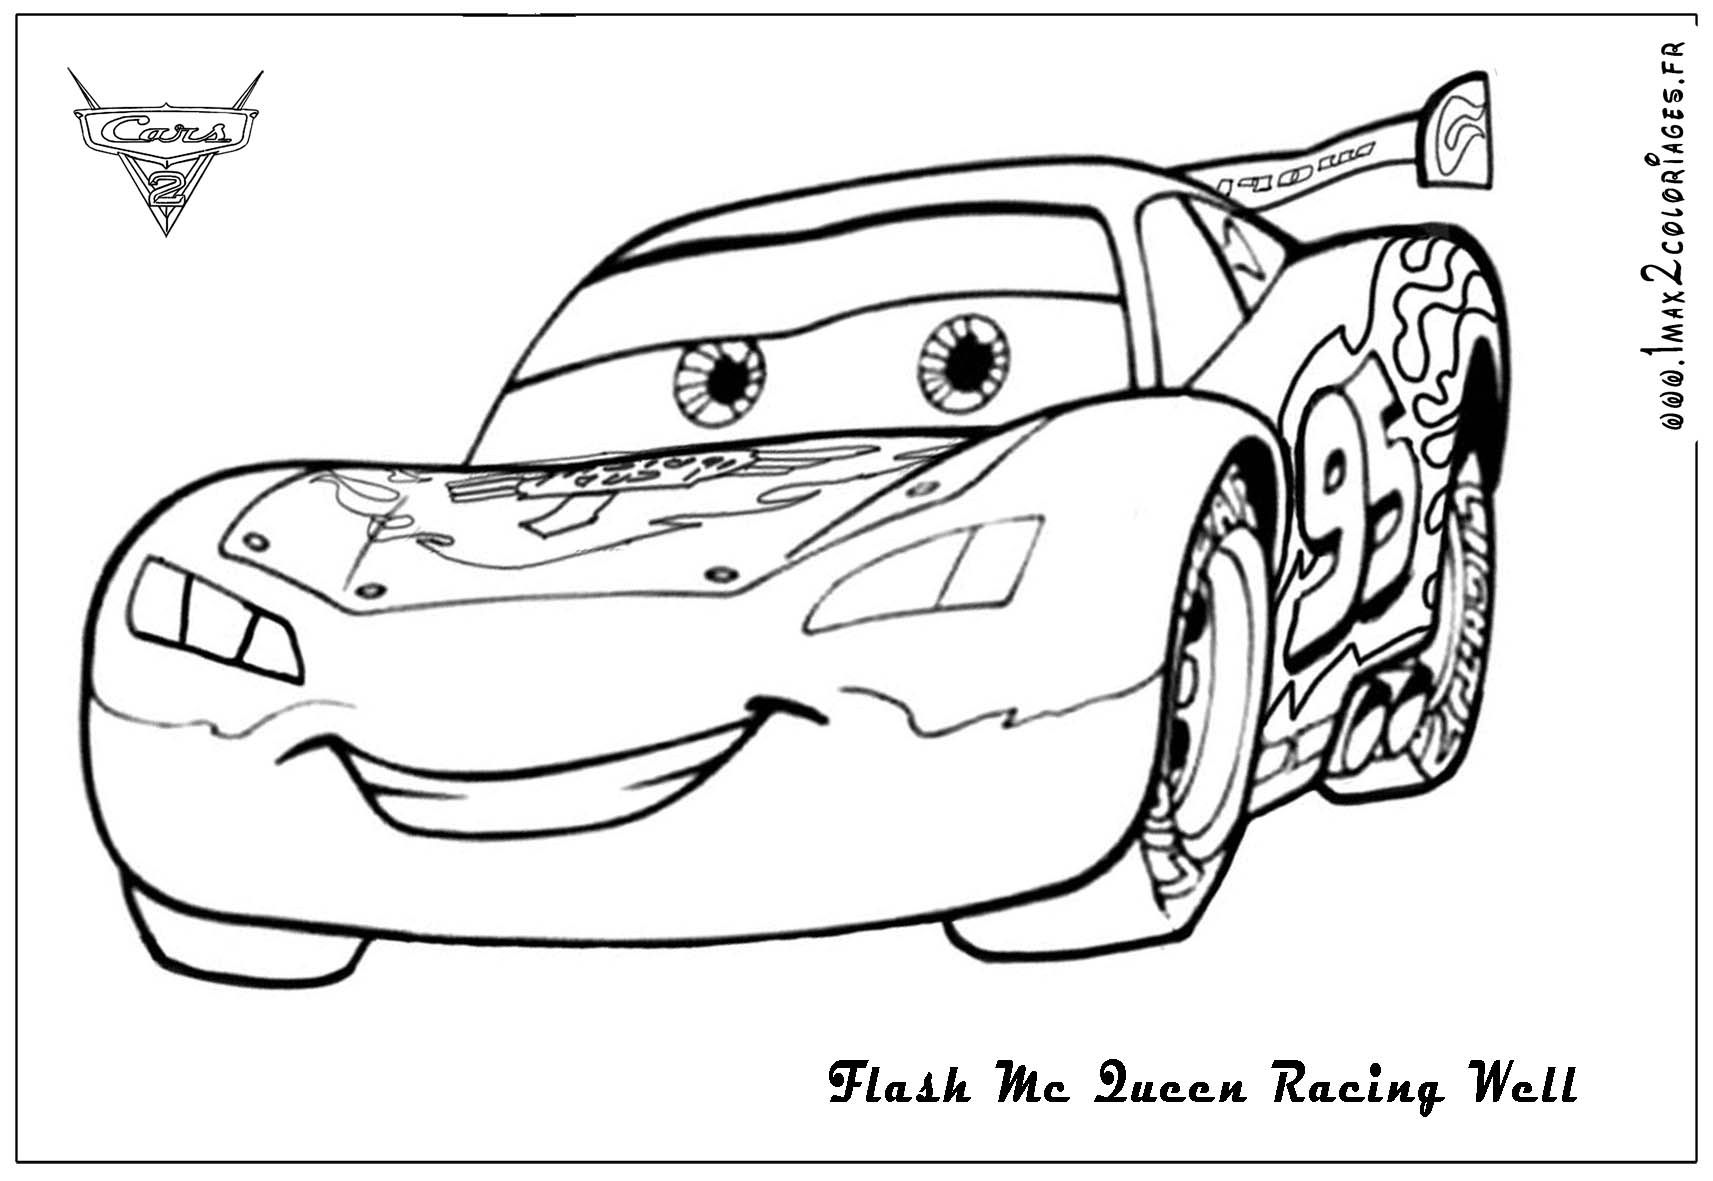 Coloriages Cars 2 Flash Mc Queen Racing Cars 2 Avec Images